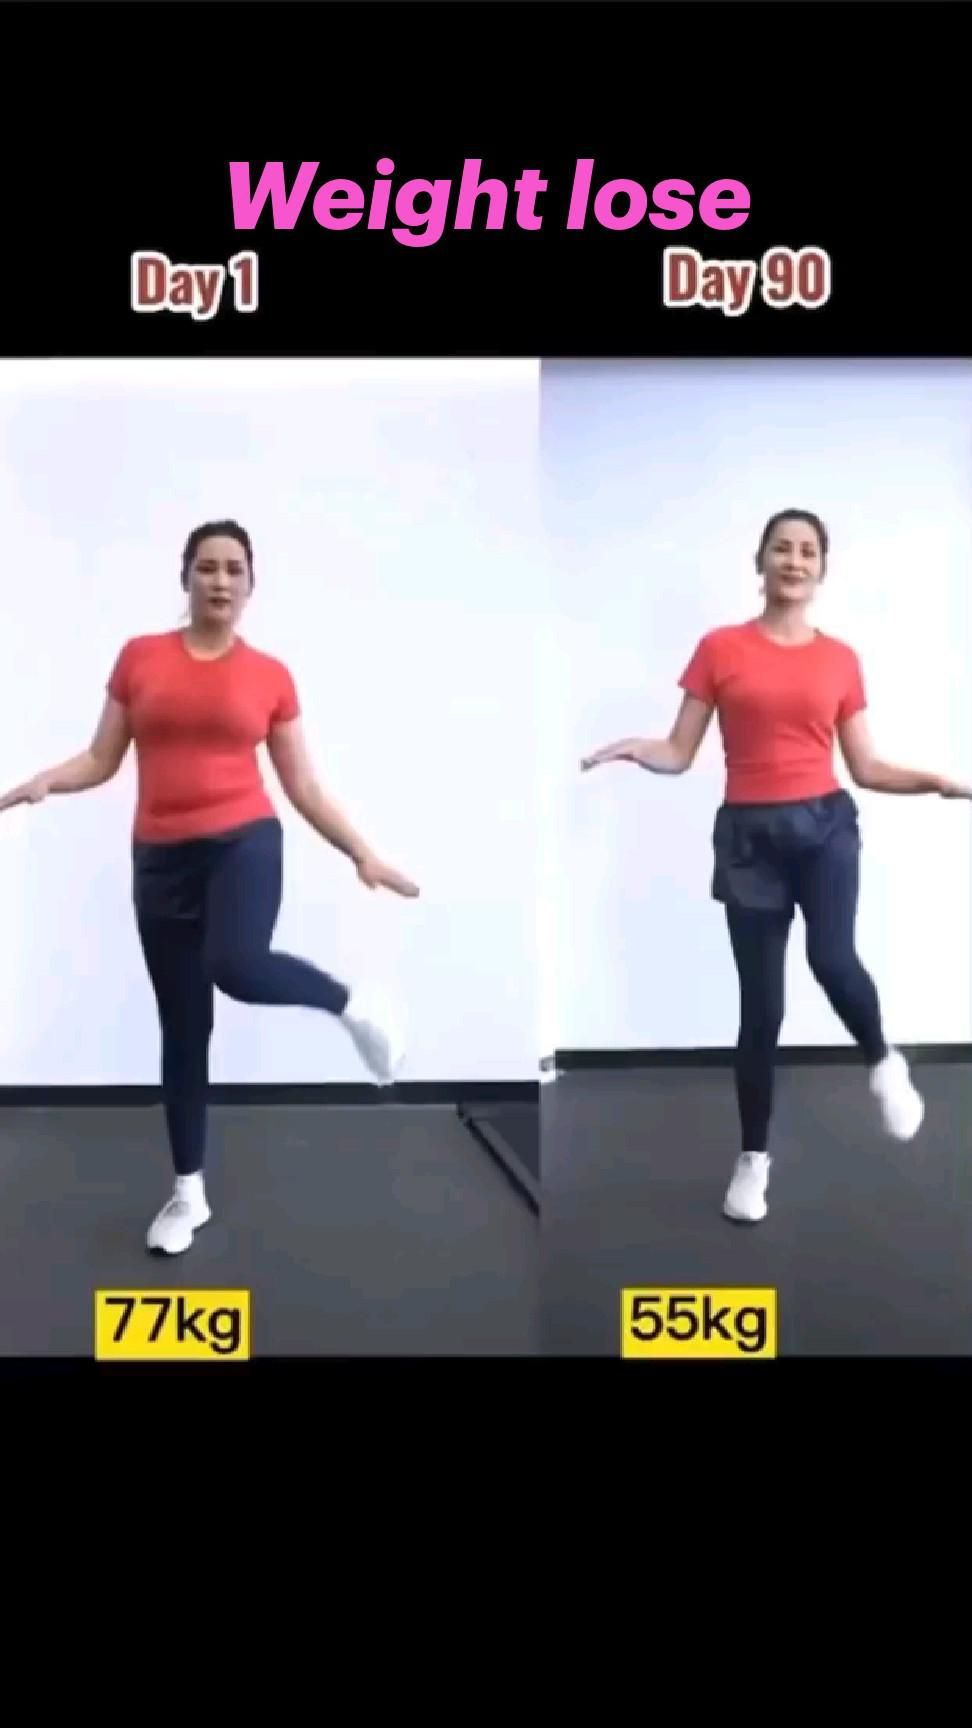 Weight lose workout for women fitness, and get flat belly & slim waist